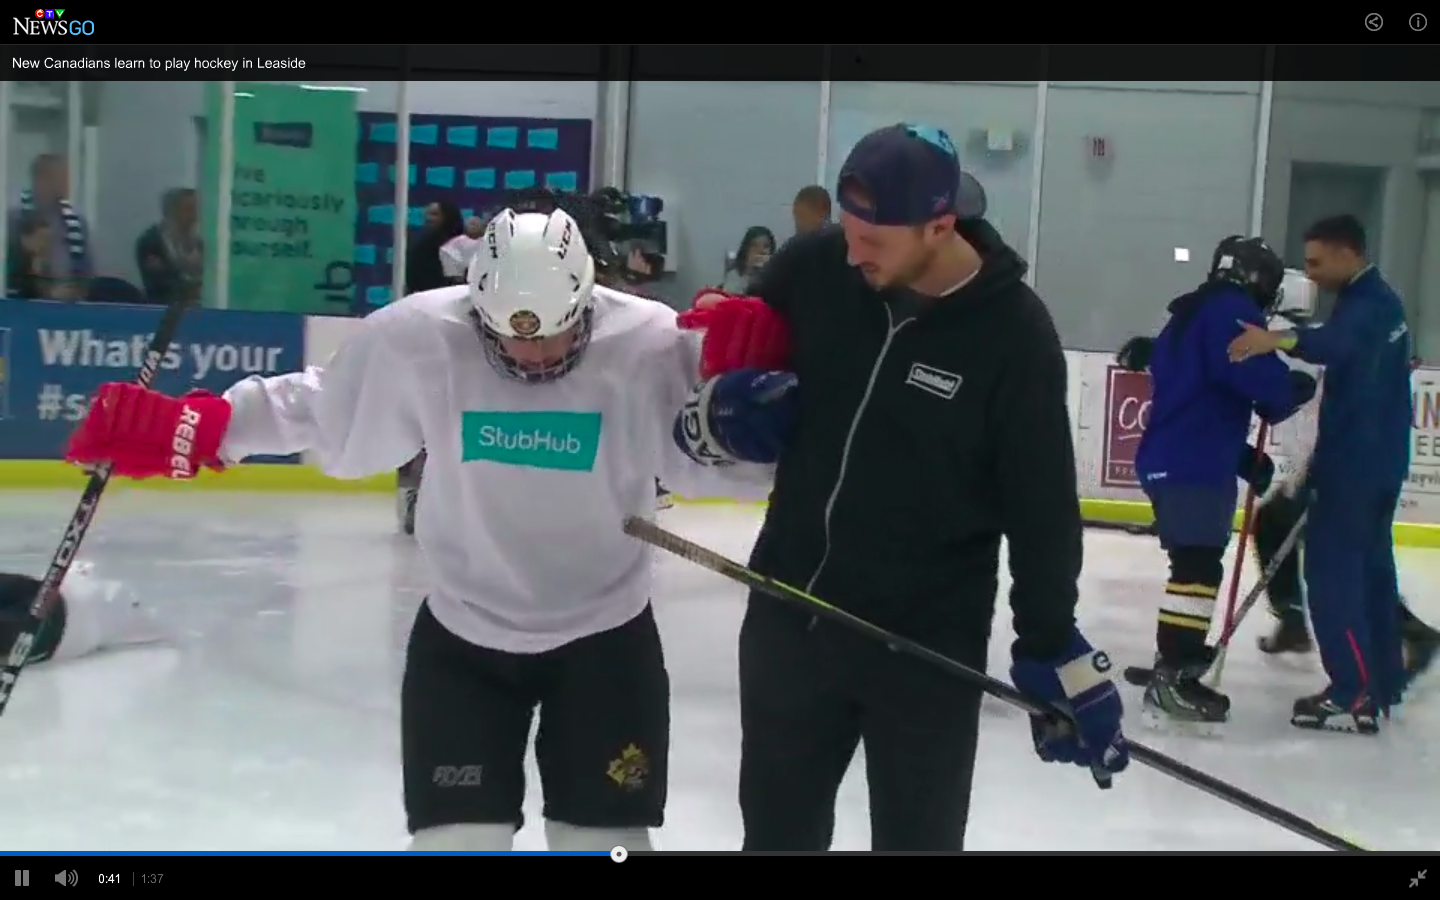 Hockey 4 Youth student gets assistance from StubHub volunteer coach